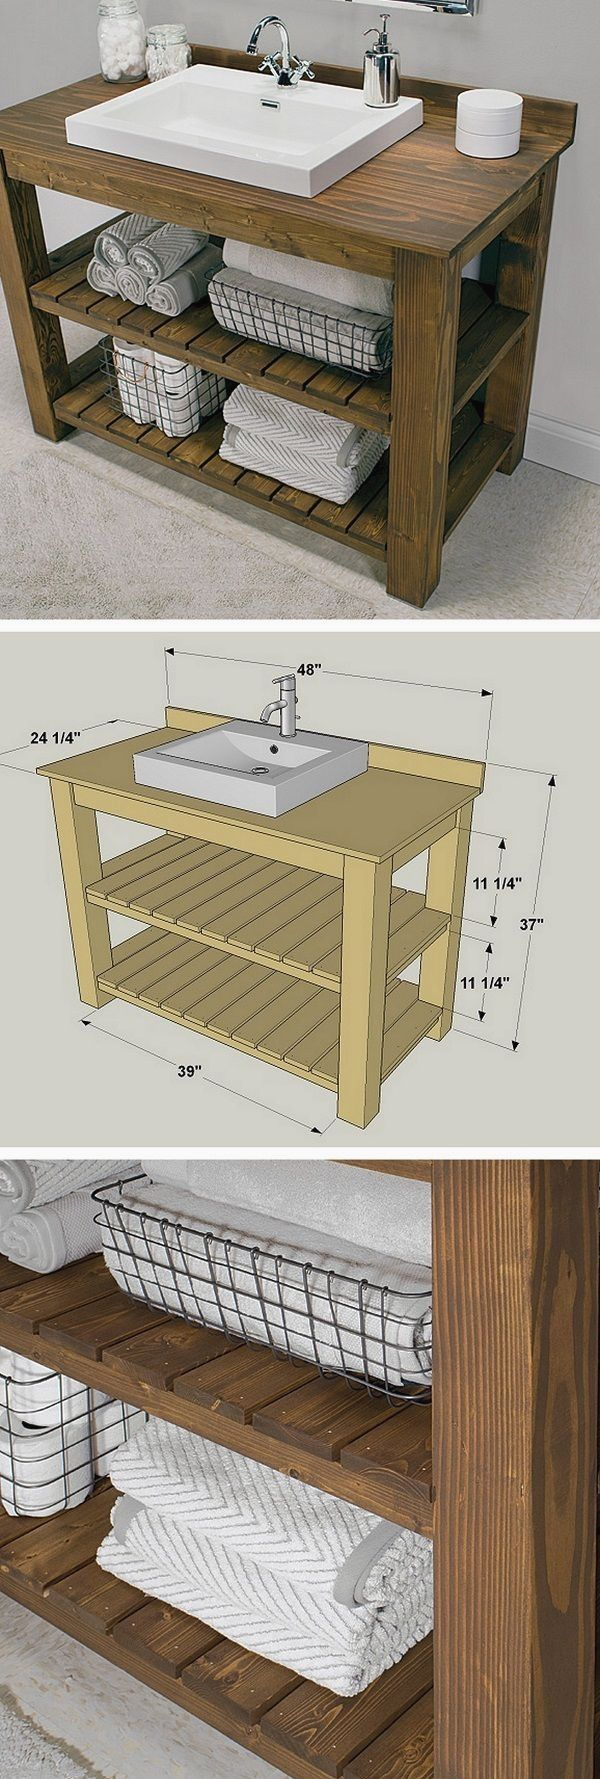 Photo of 24 Easy DIY Bathroom Vanity Plans for a Quick Remodel